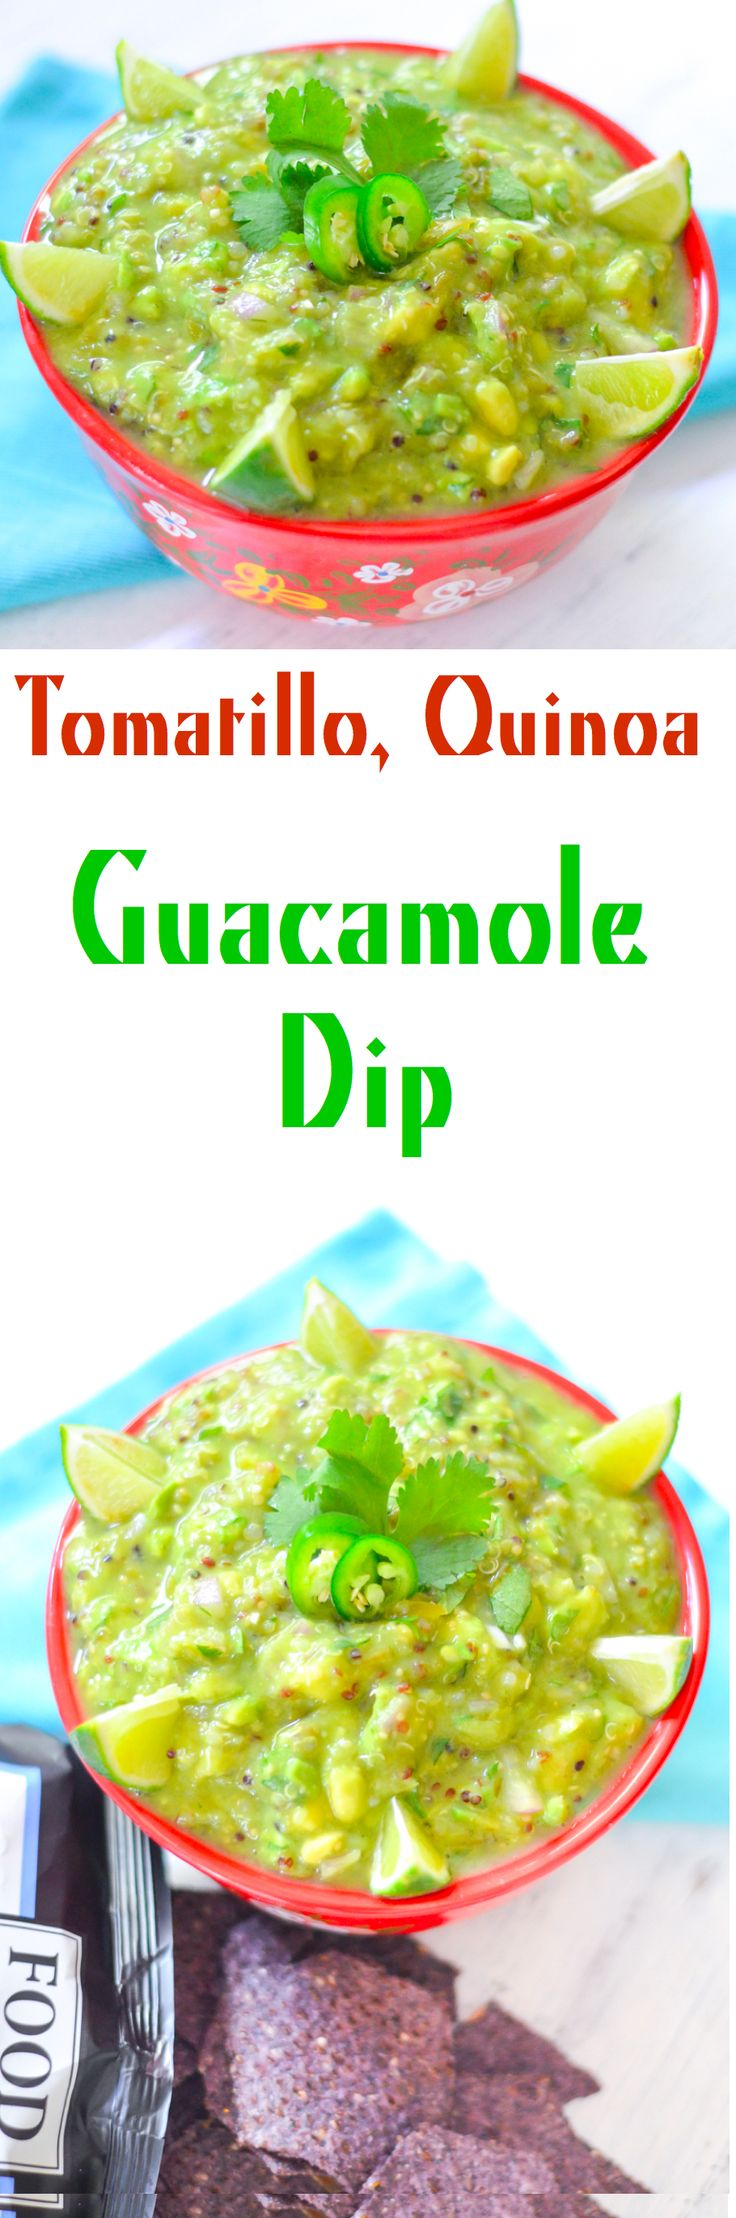 Tomatillo Avocado Sals Recipe. This roasted tomatillo, Quinoa Guacamole is a great Healthy, Vegan Cinco de Mayo Recipe. Protein-packed and low fat compared with traditional guacamole.